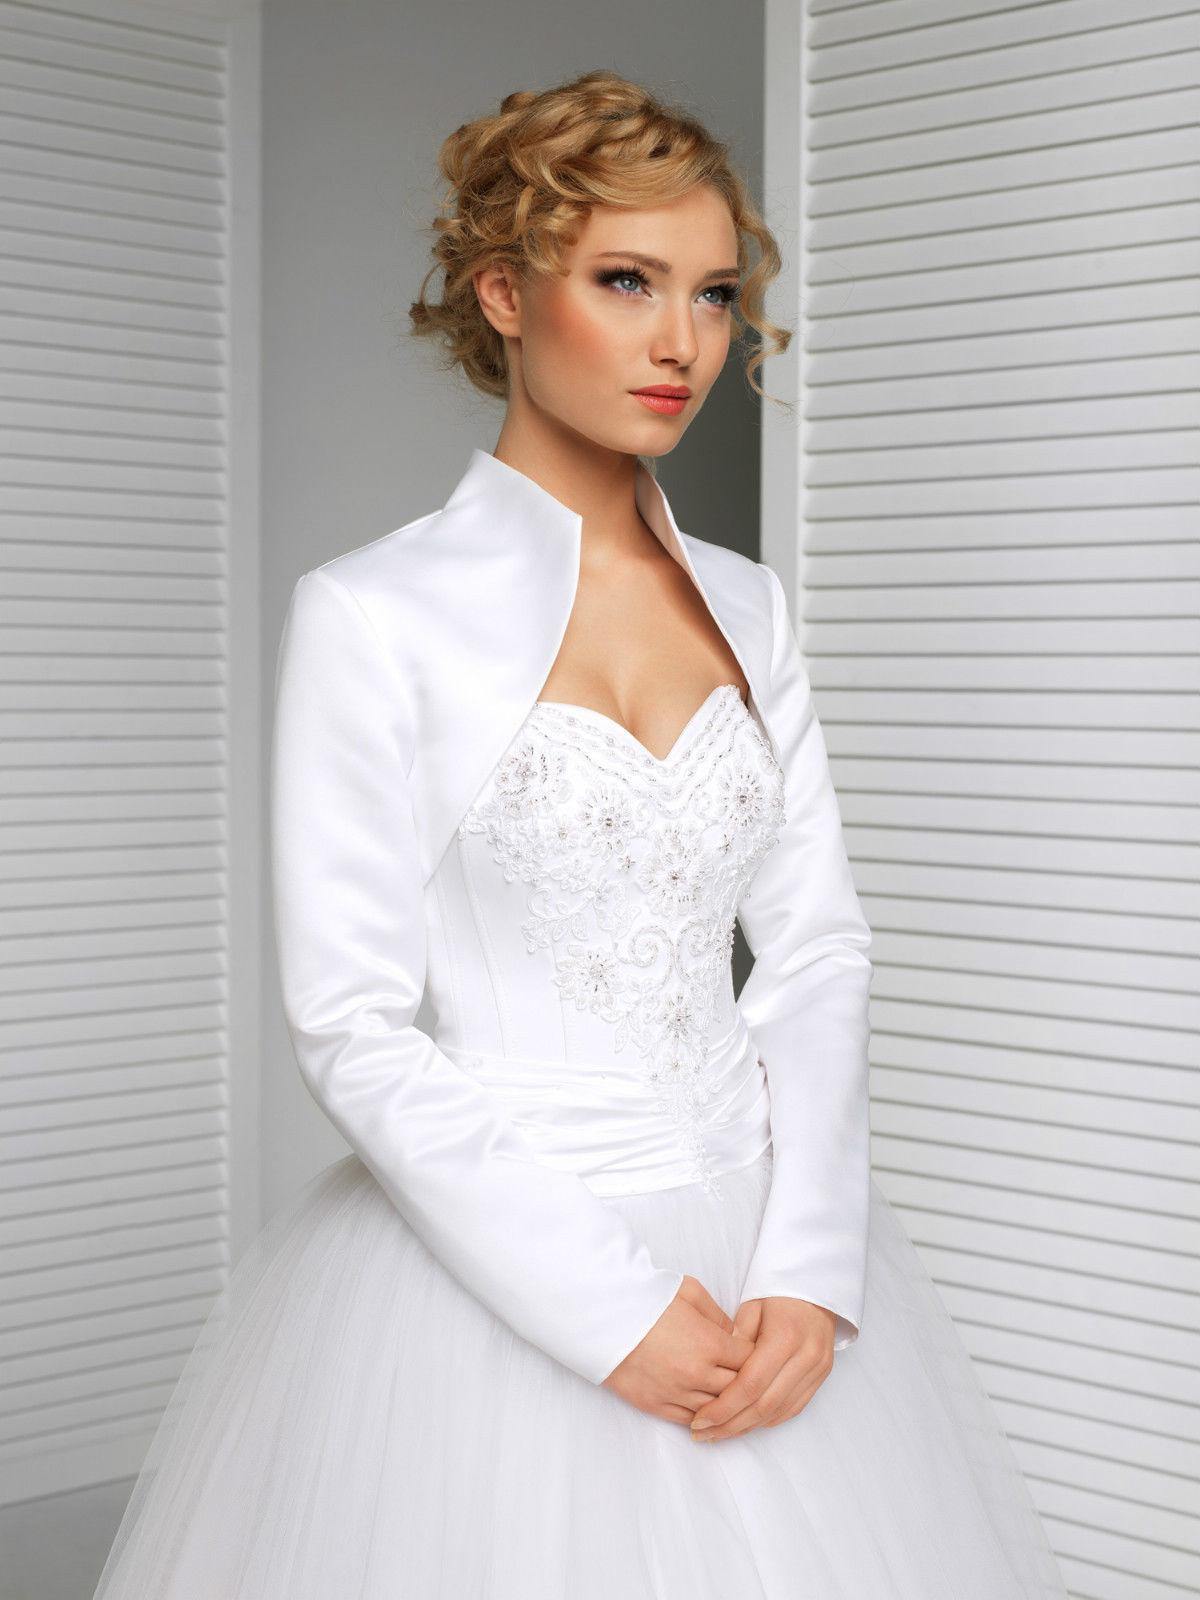 top rated custom made size and color wedding jacket satin long sleeves high collar bride accessories bridal bolero / shrug / wraps / shwal